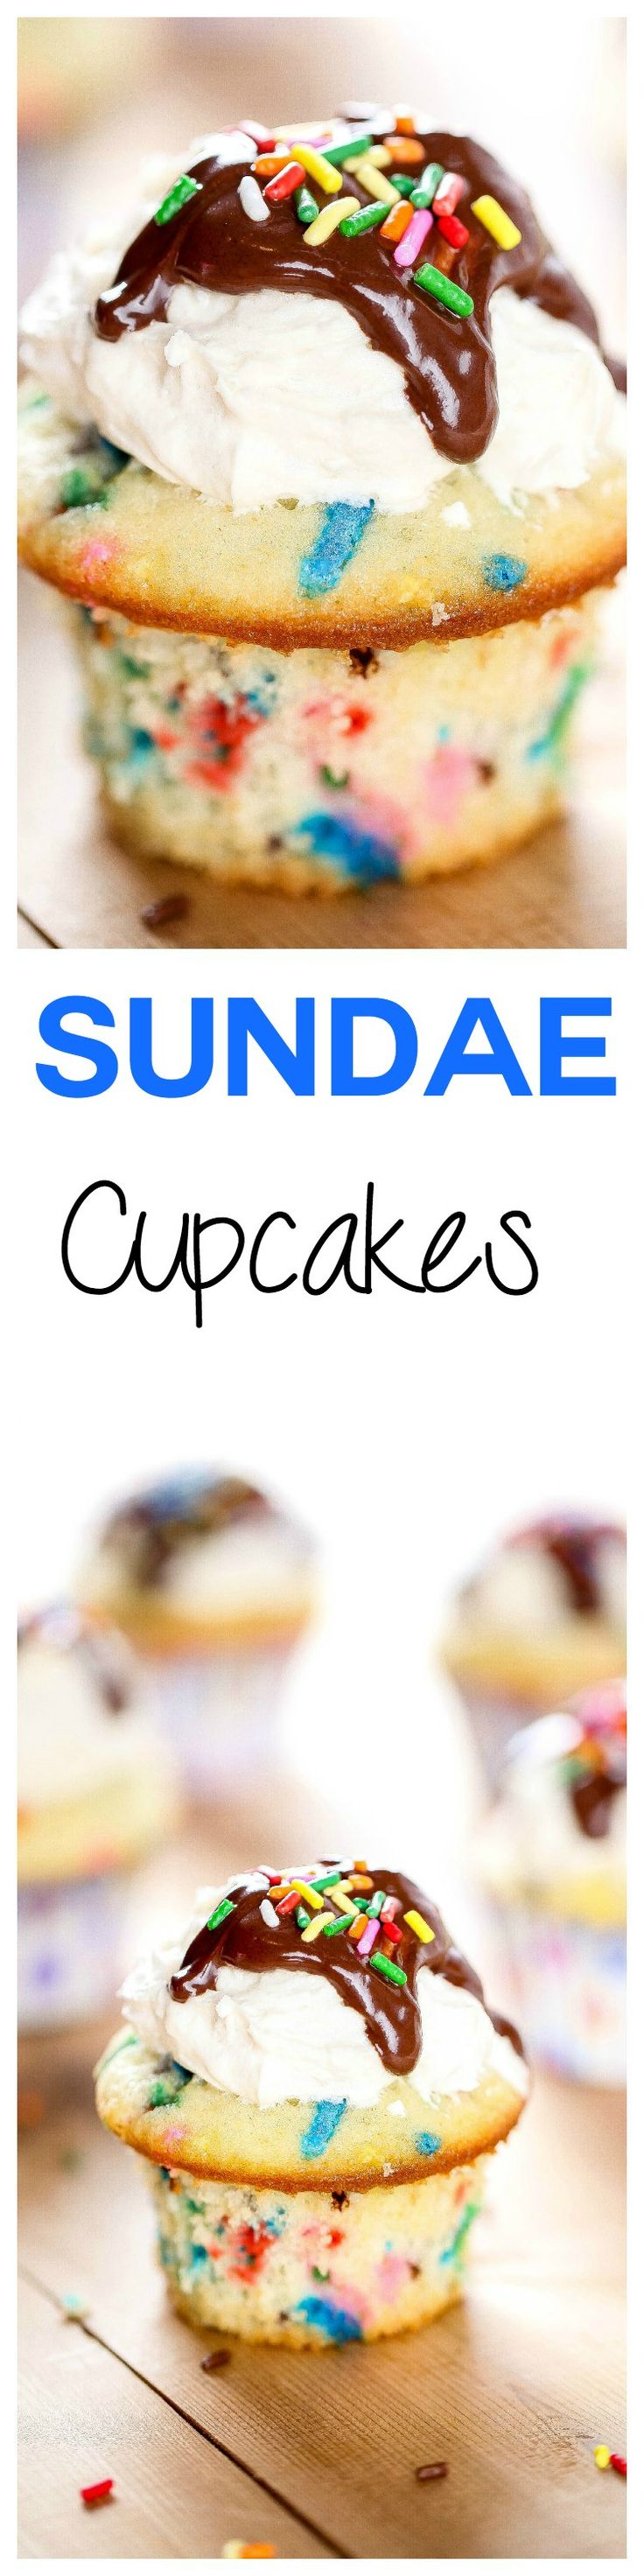 Ice Cream Sundae Cupcakes Moist vanilla cupcakes topped with sweet buttercream and rich chocolate